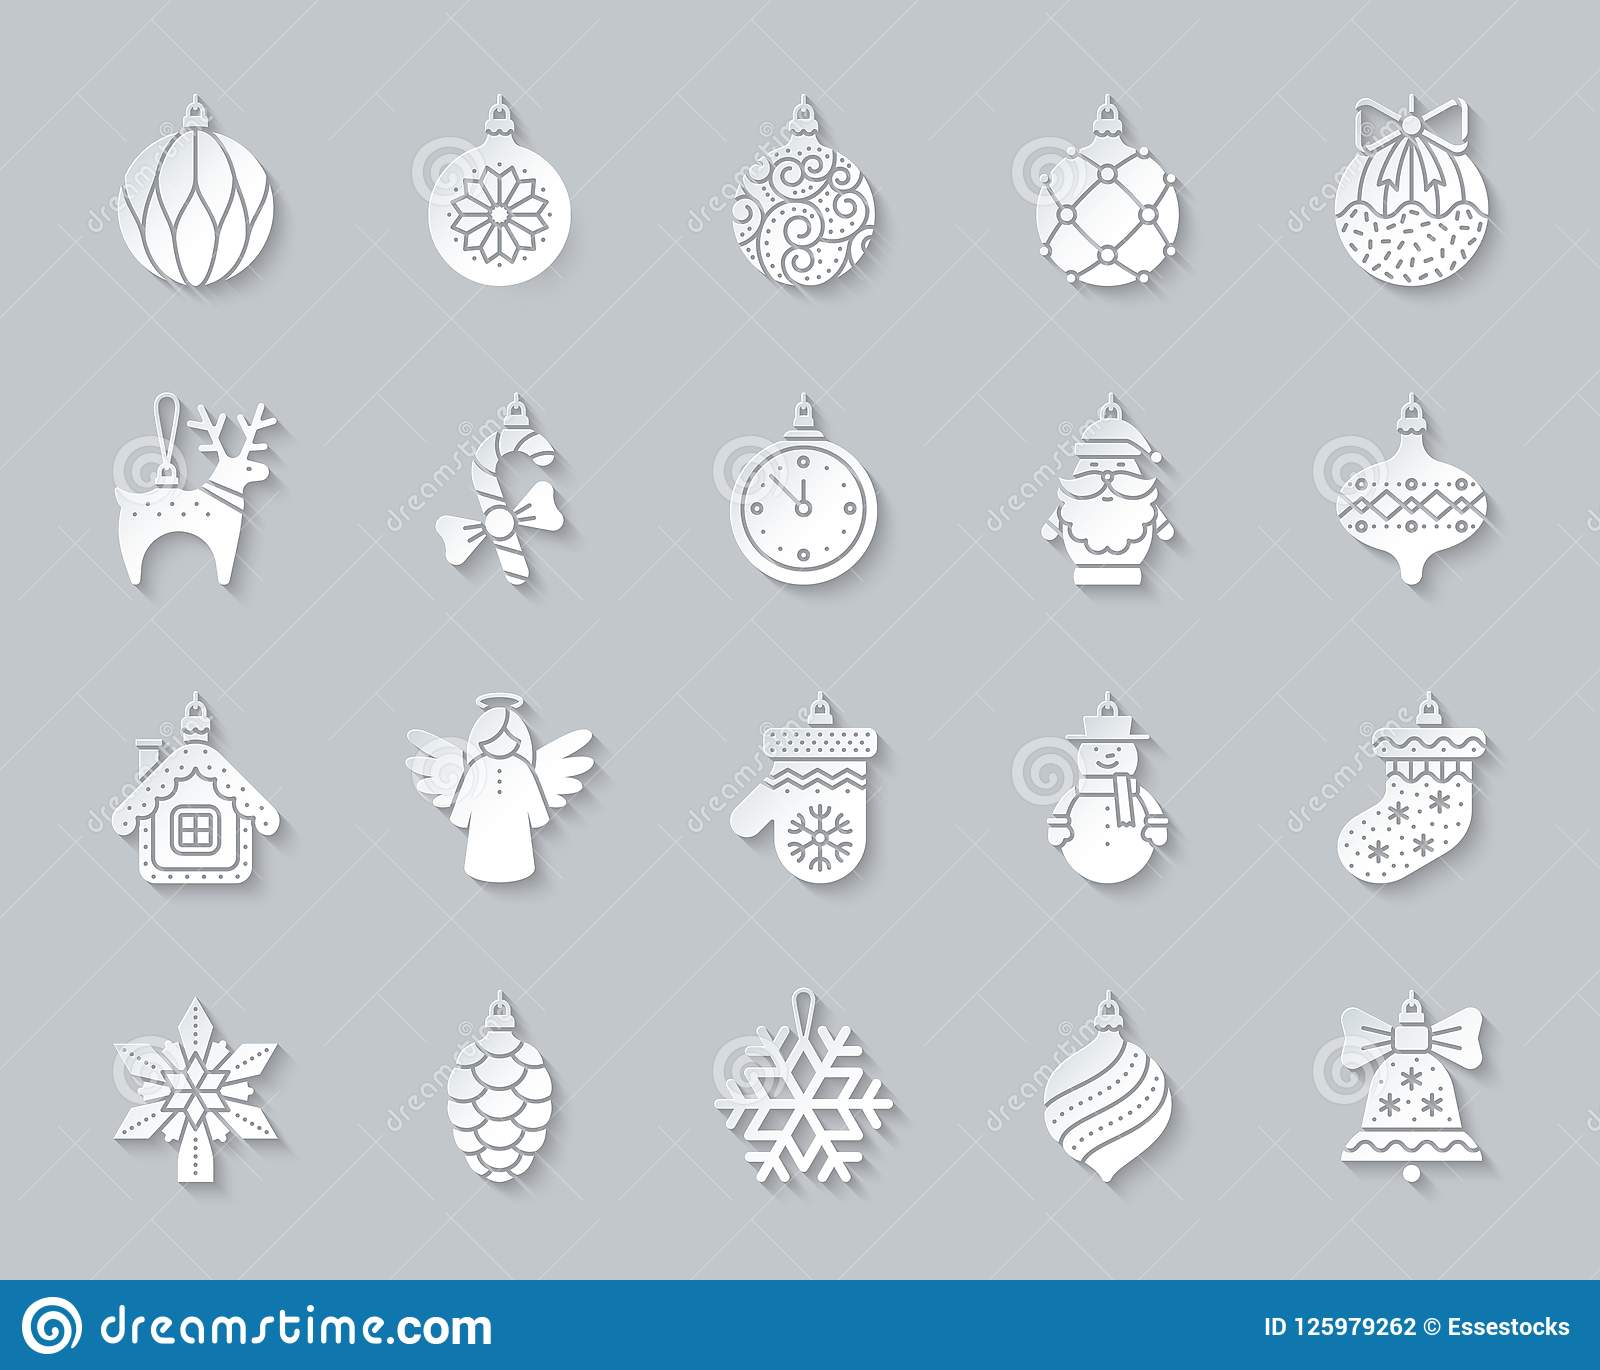 Xmas Tree Decor Simple Paper Cut Icons Vector Set Stock Vector Illustration Of Hanging Ball 125979262